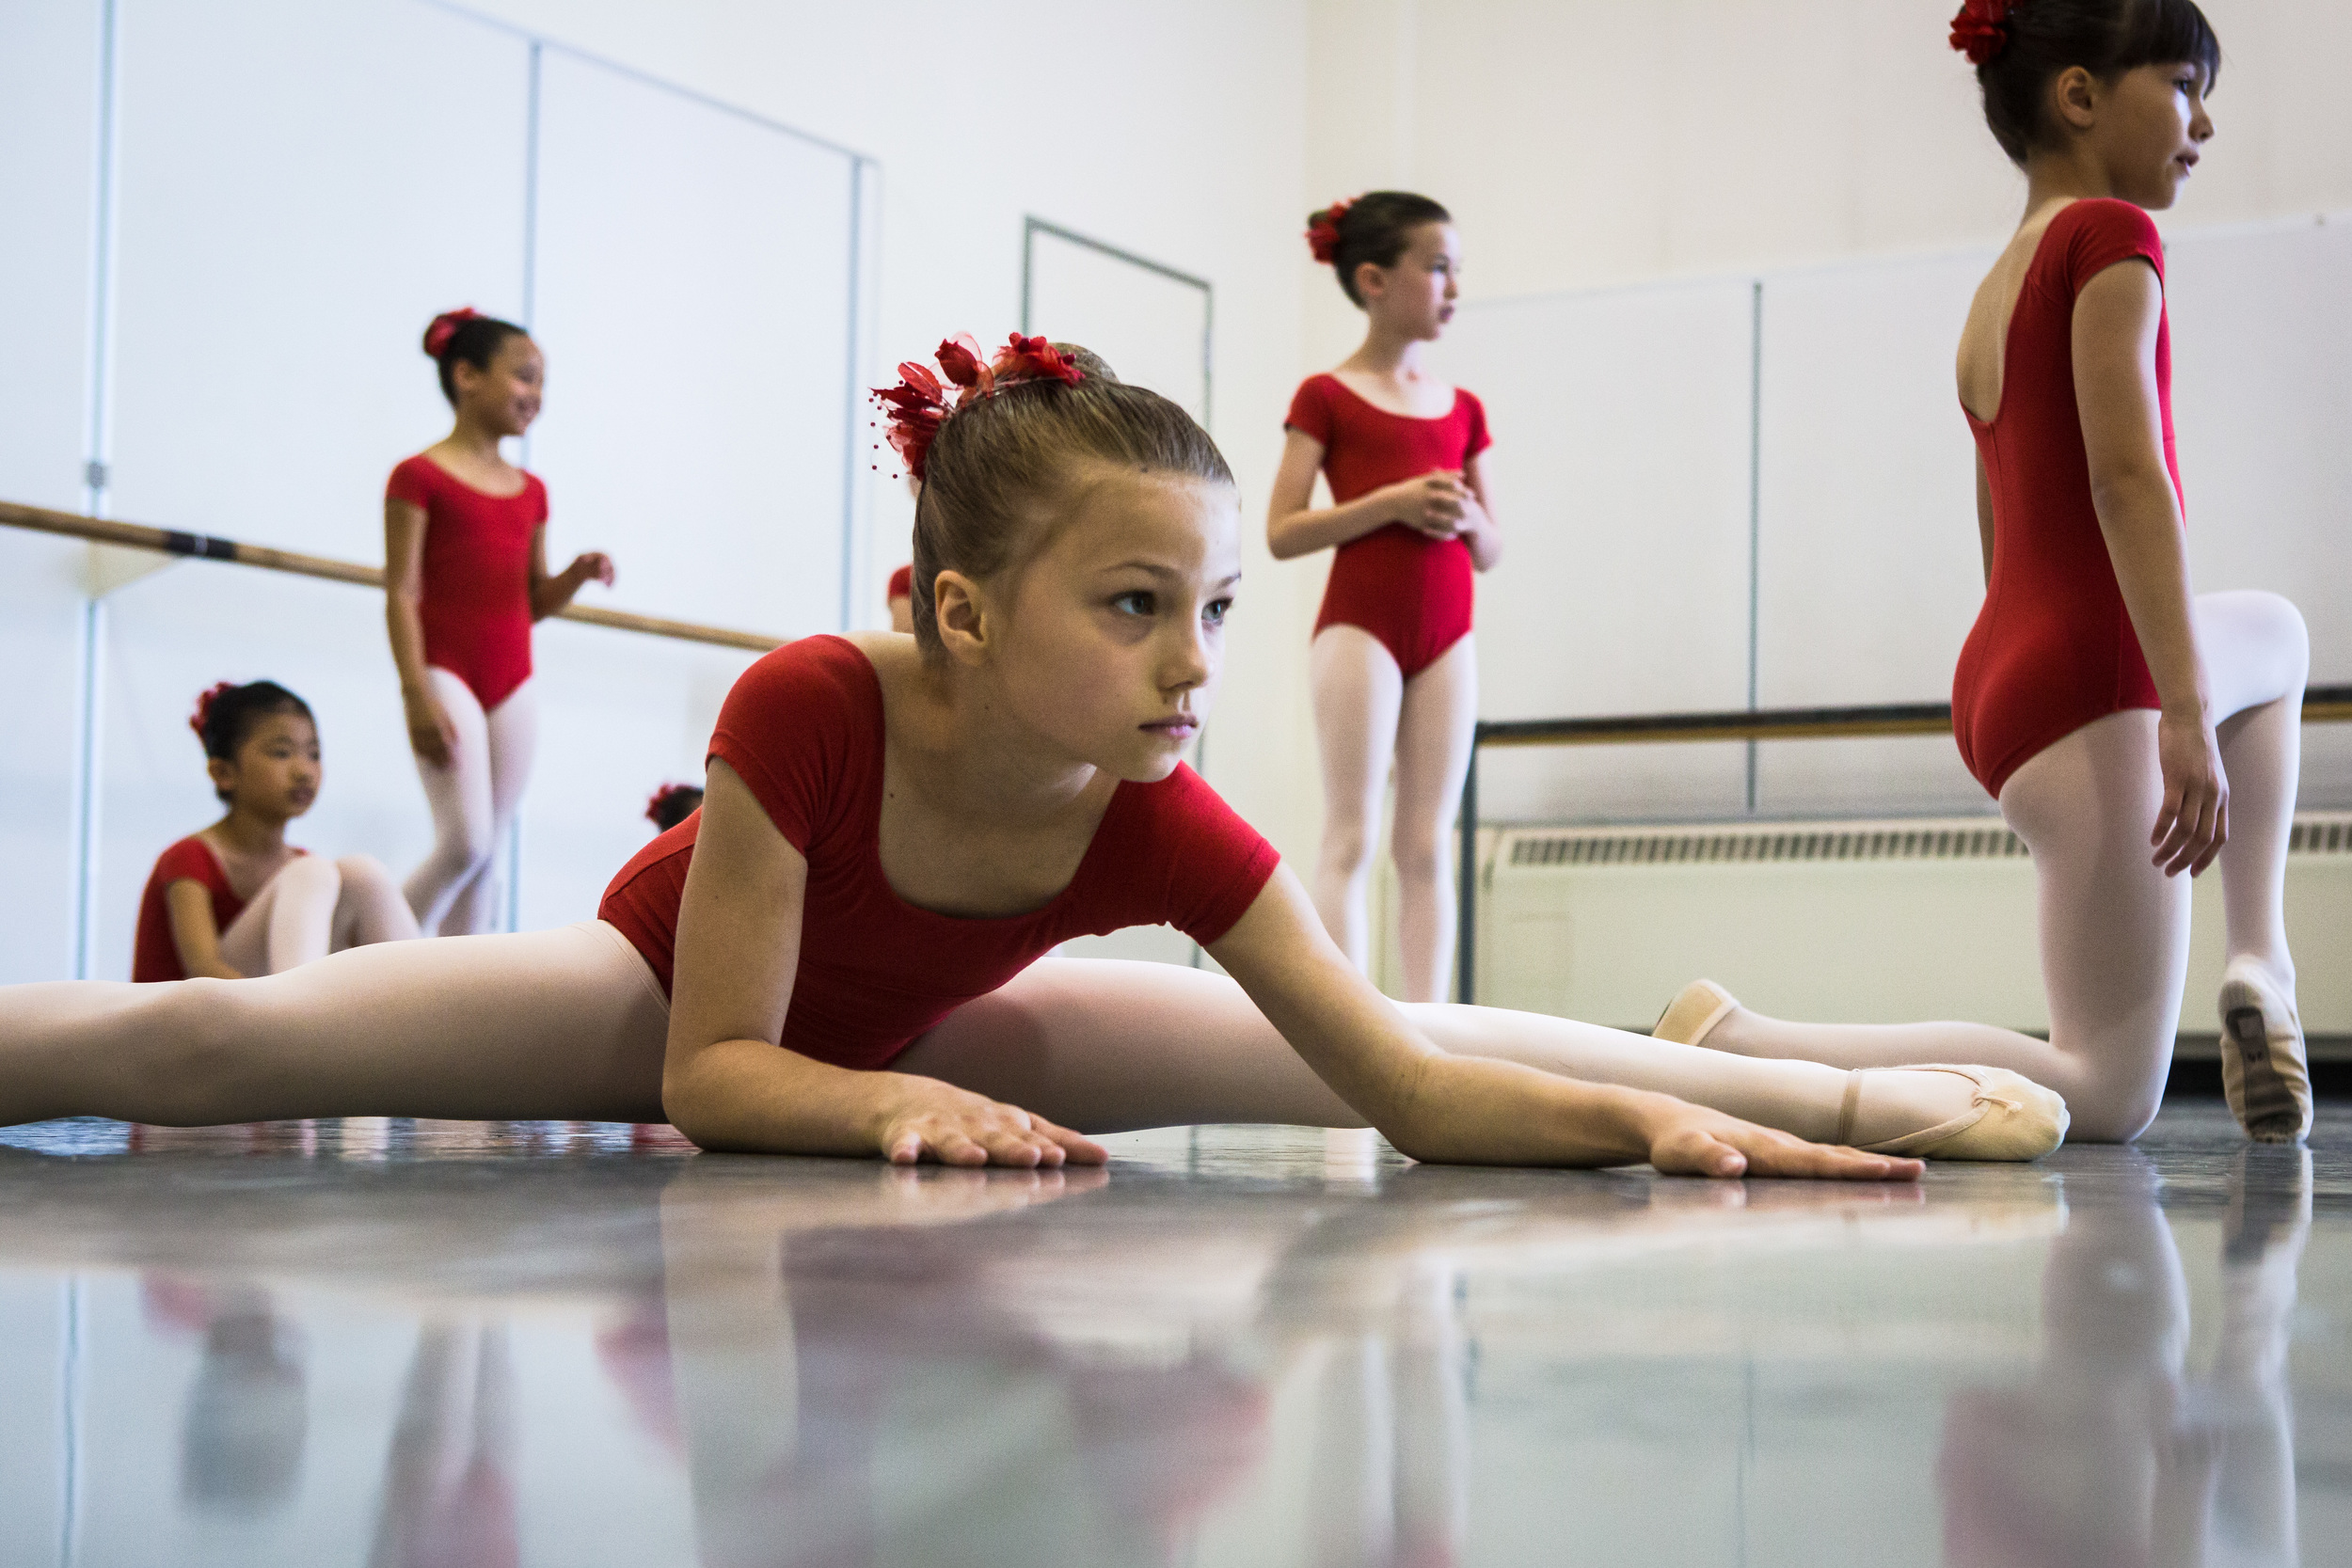 Students stretch before performing in Pacific Northwest Ballet's 21st annual DanceChance Observation Day on Saturday, June 6, 2015. The program offers full scholarships for students to train twice a week with the PNB School. The performance showcased the dancers' hard work for friends, family and supporters of the program.